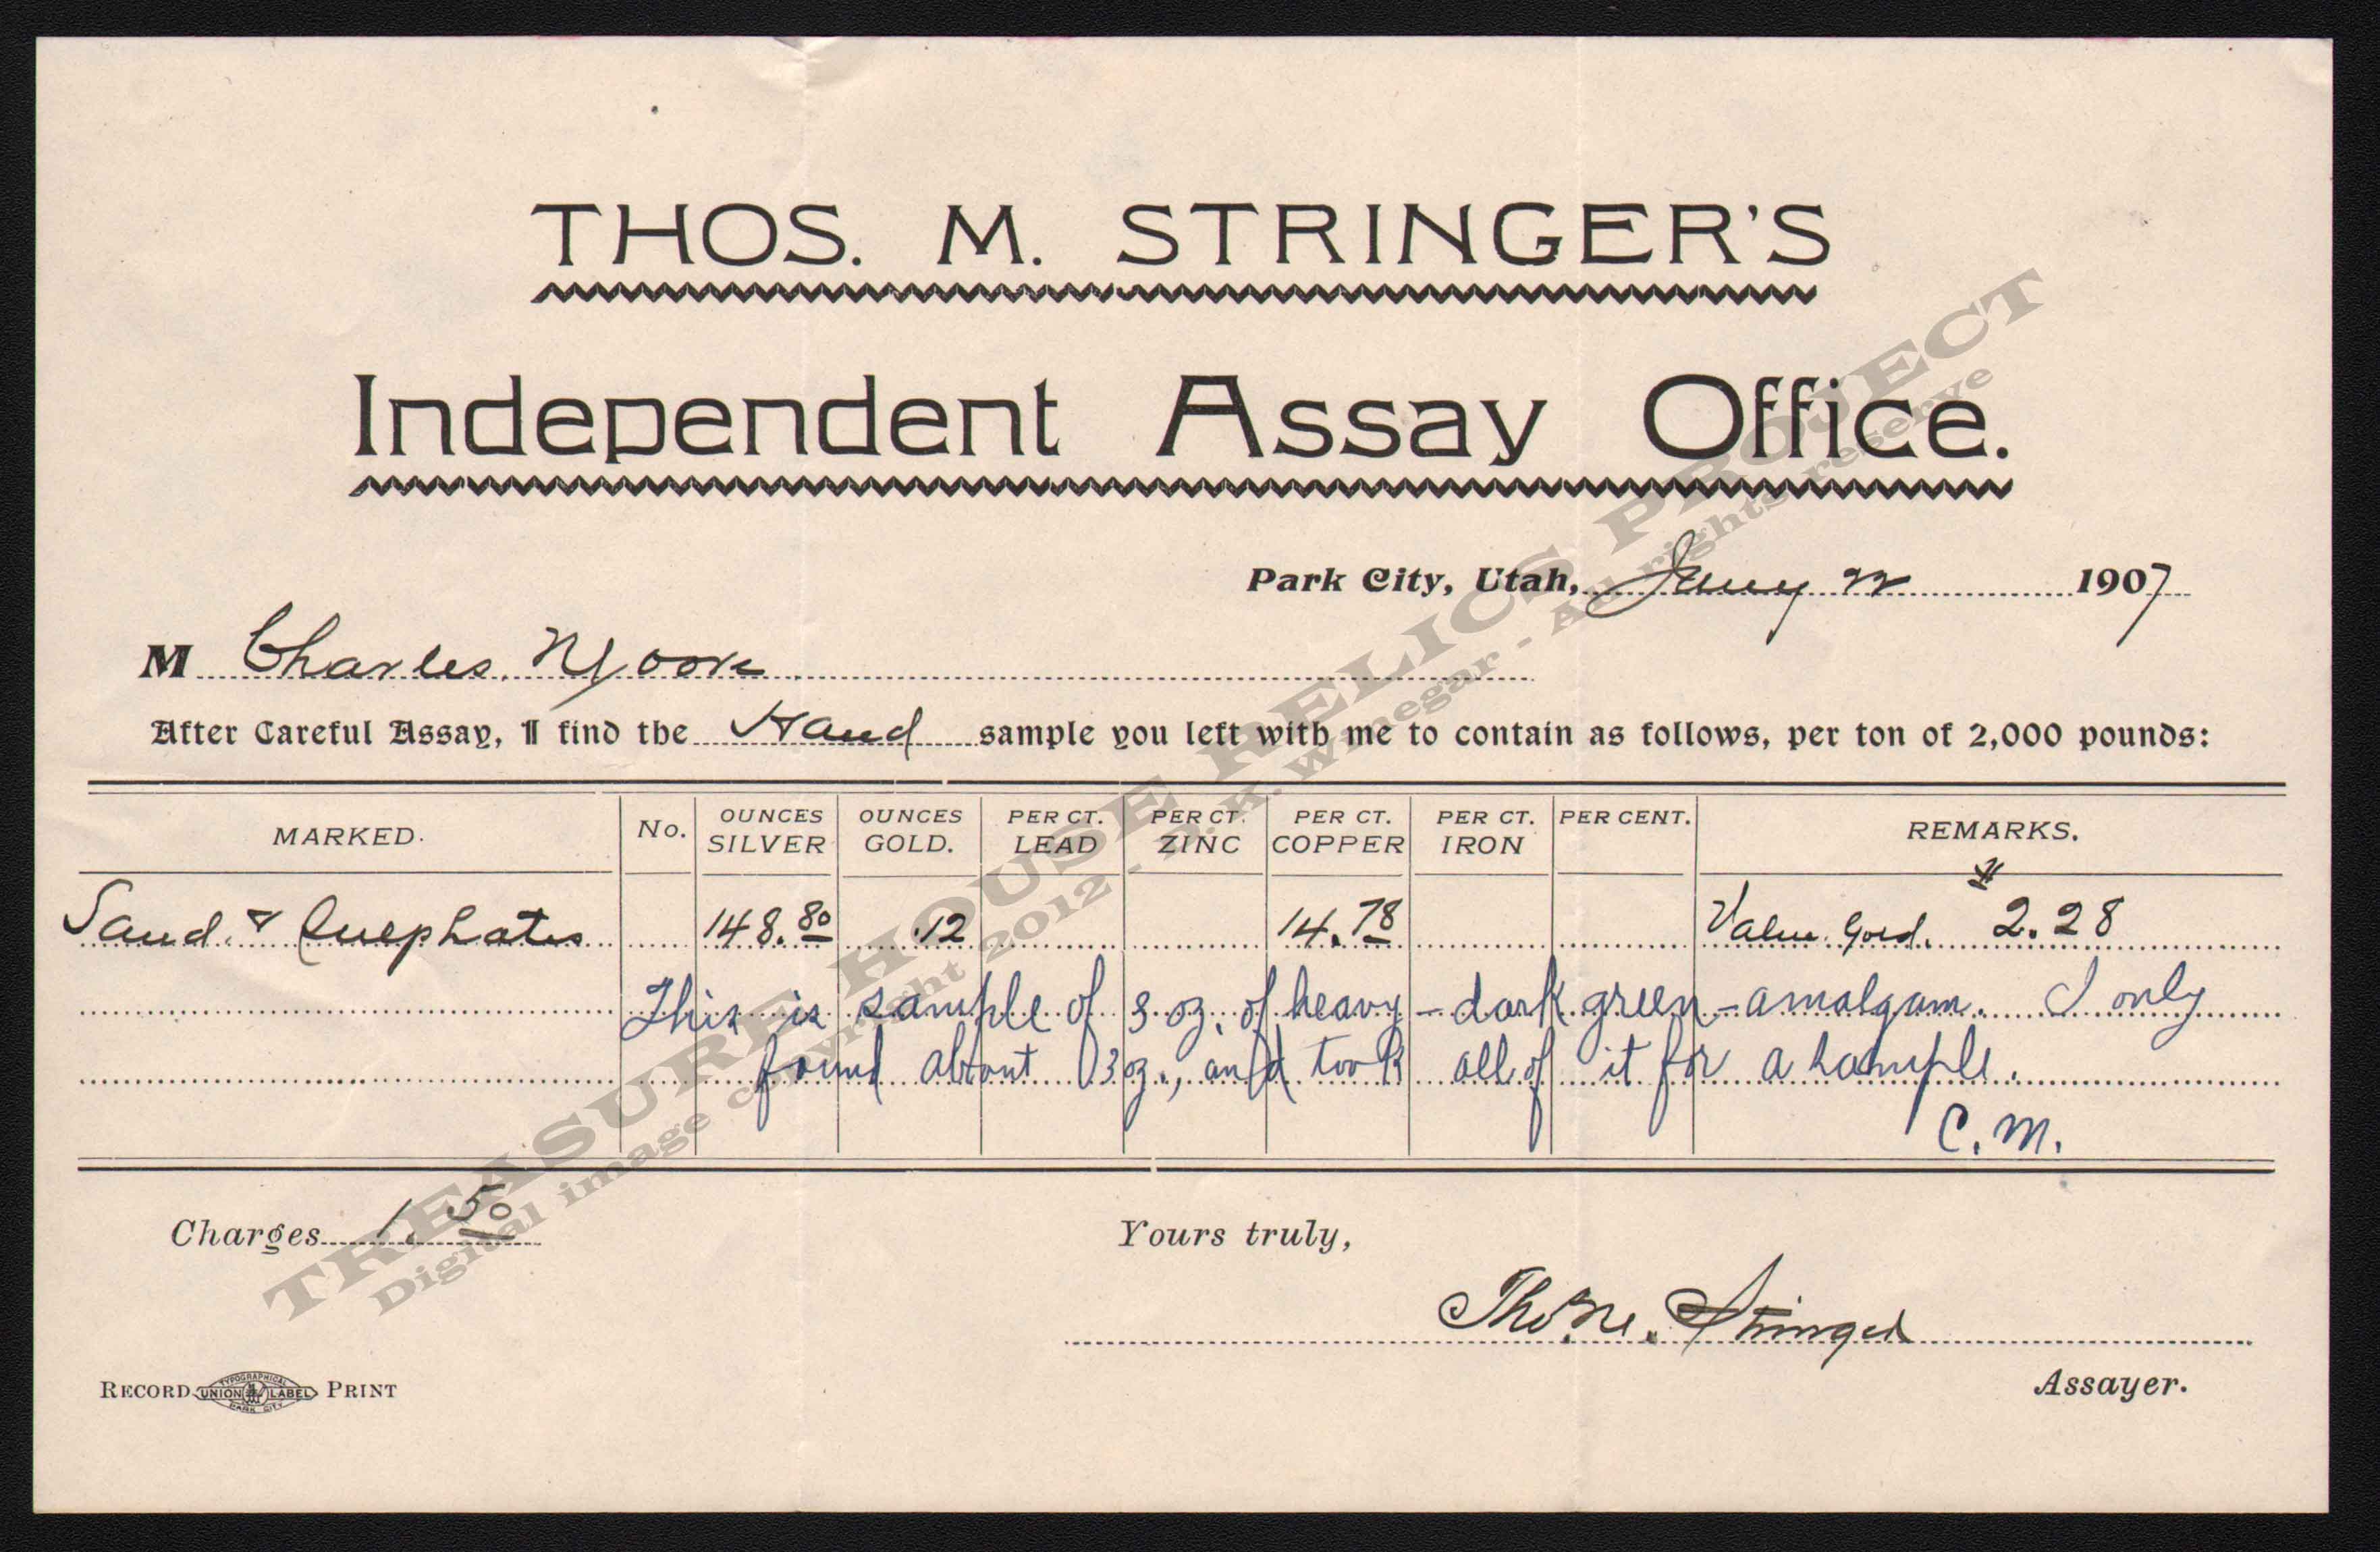 LETTERHEAD/ASSAY_STRINGERS_INDEPENDENT_7_22_1907_KIRK_400_CROP_EMBOSS.jpg